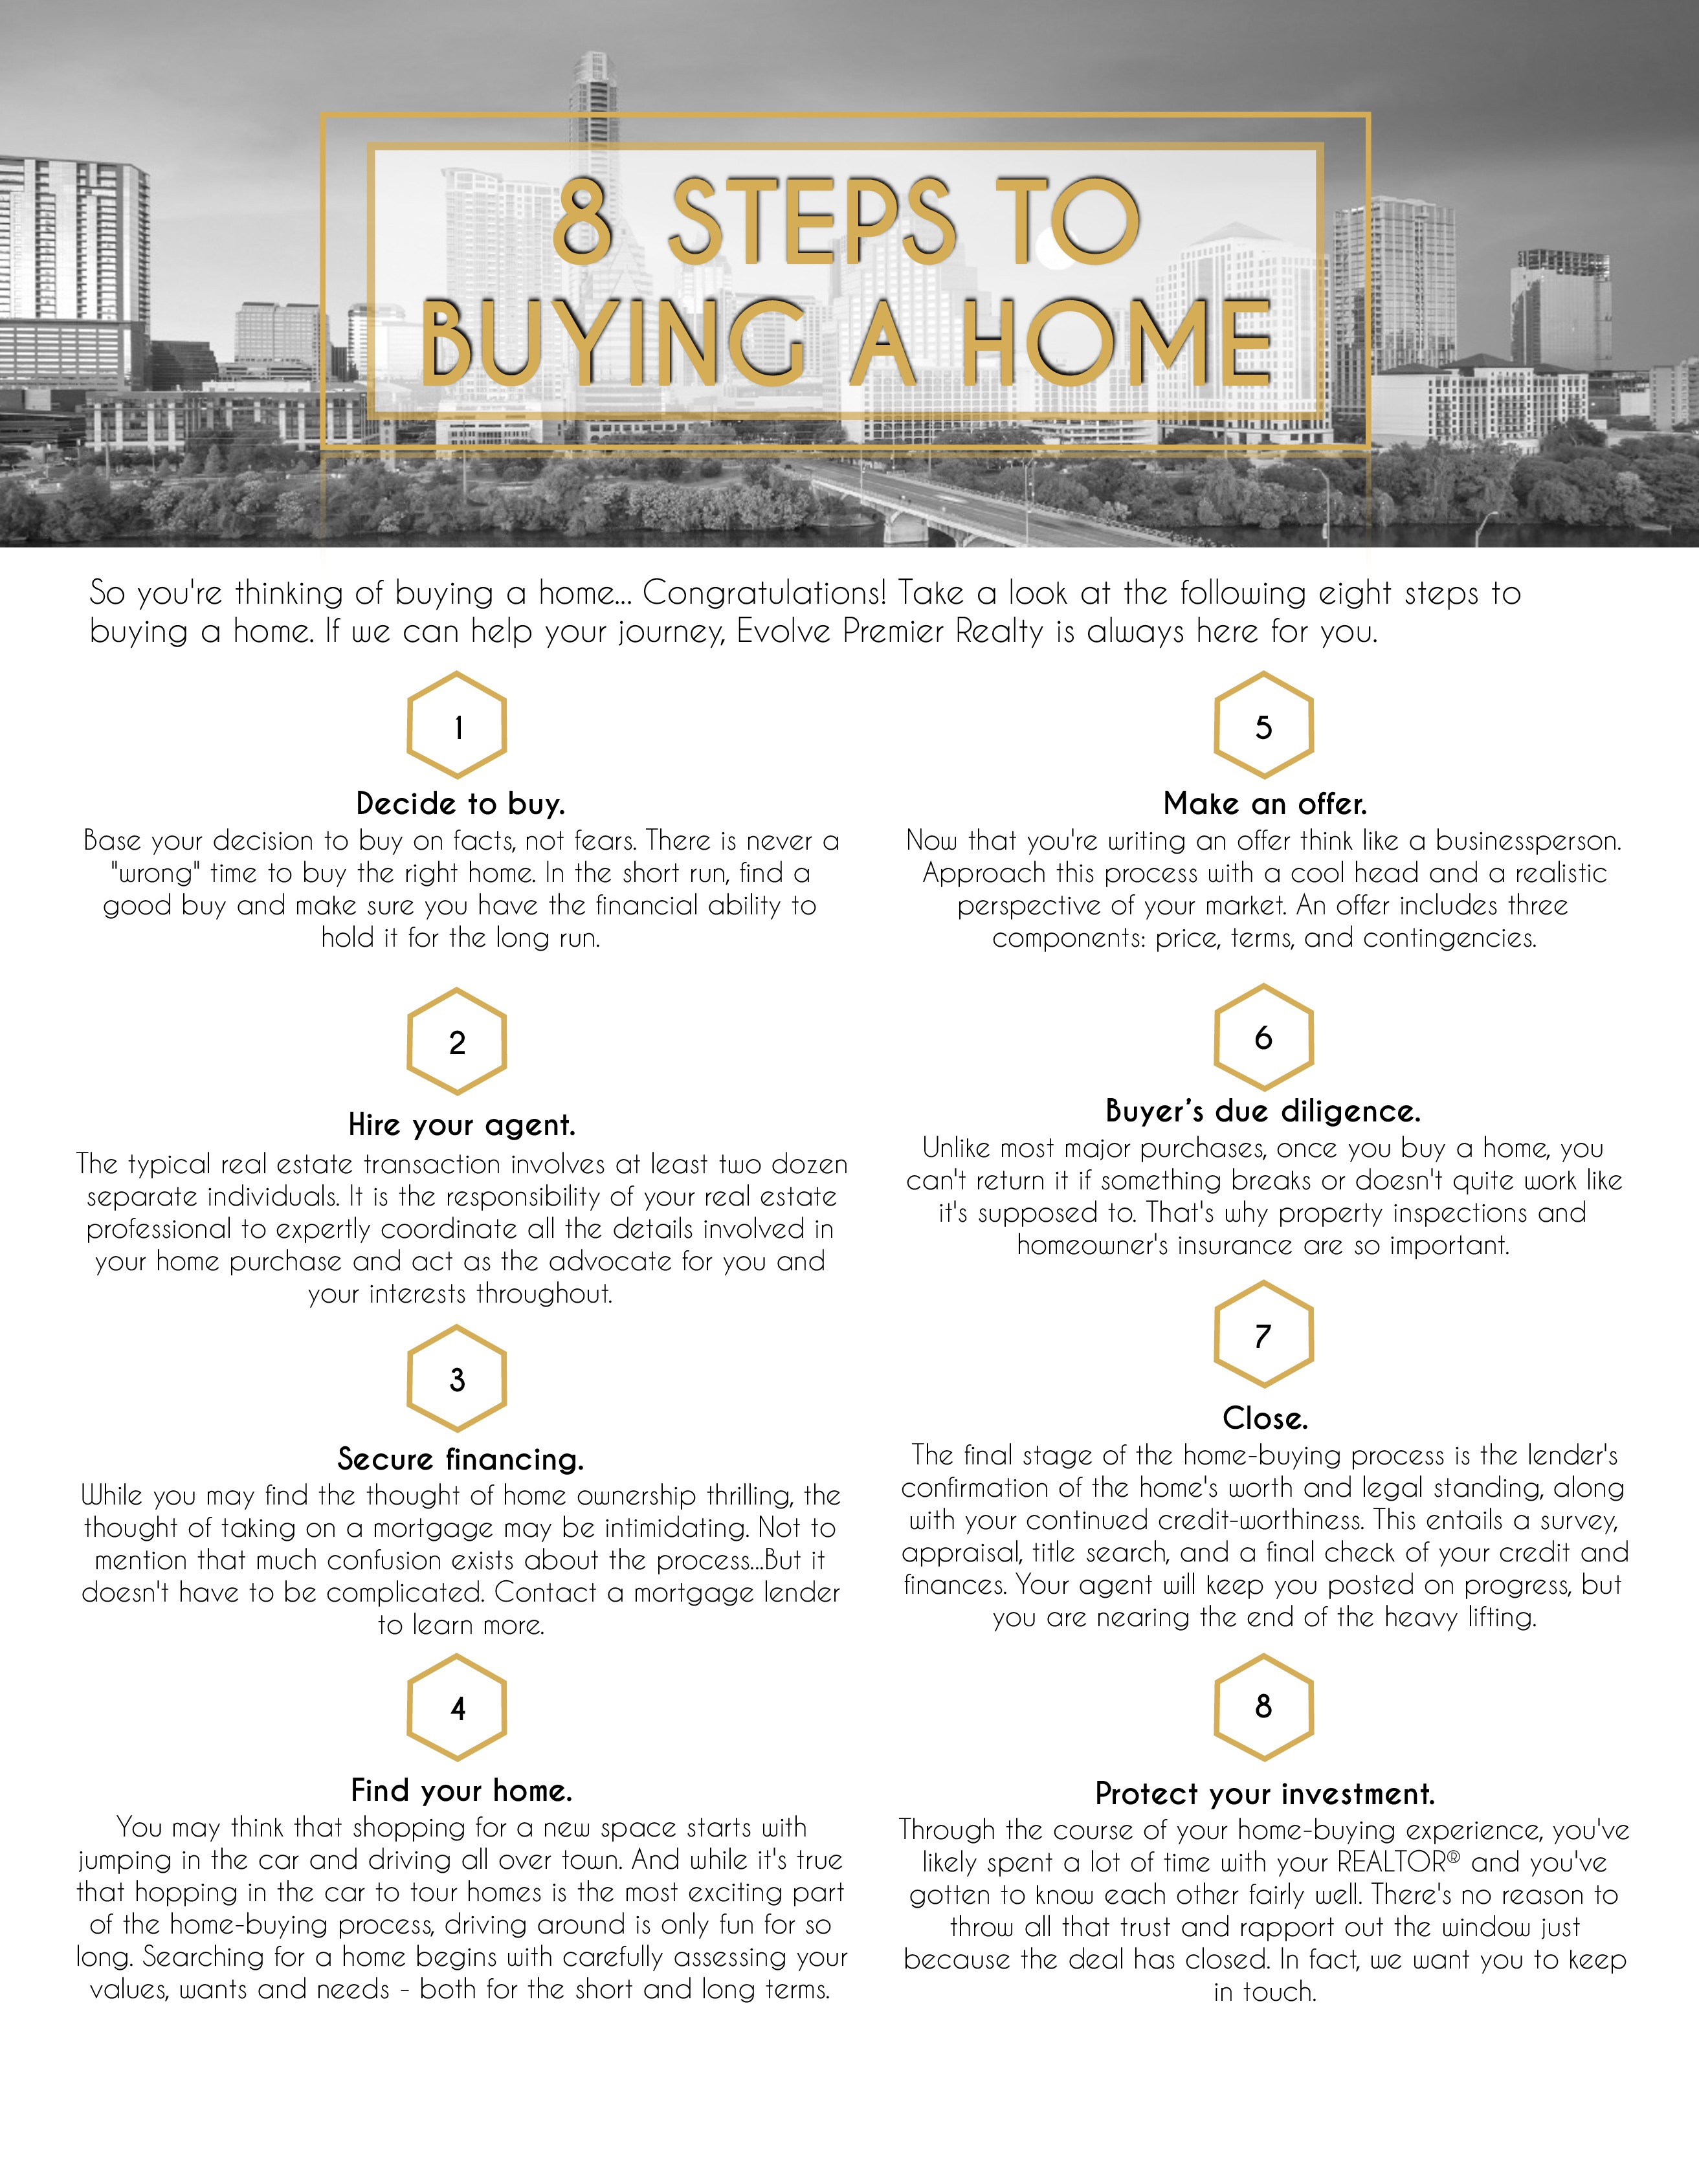 Agent Operations Customized Real Estate Marketing for Realtors